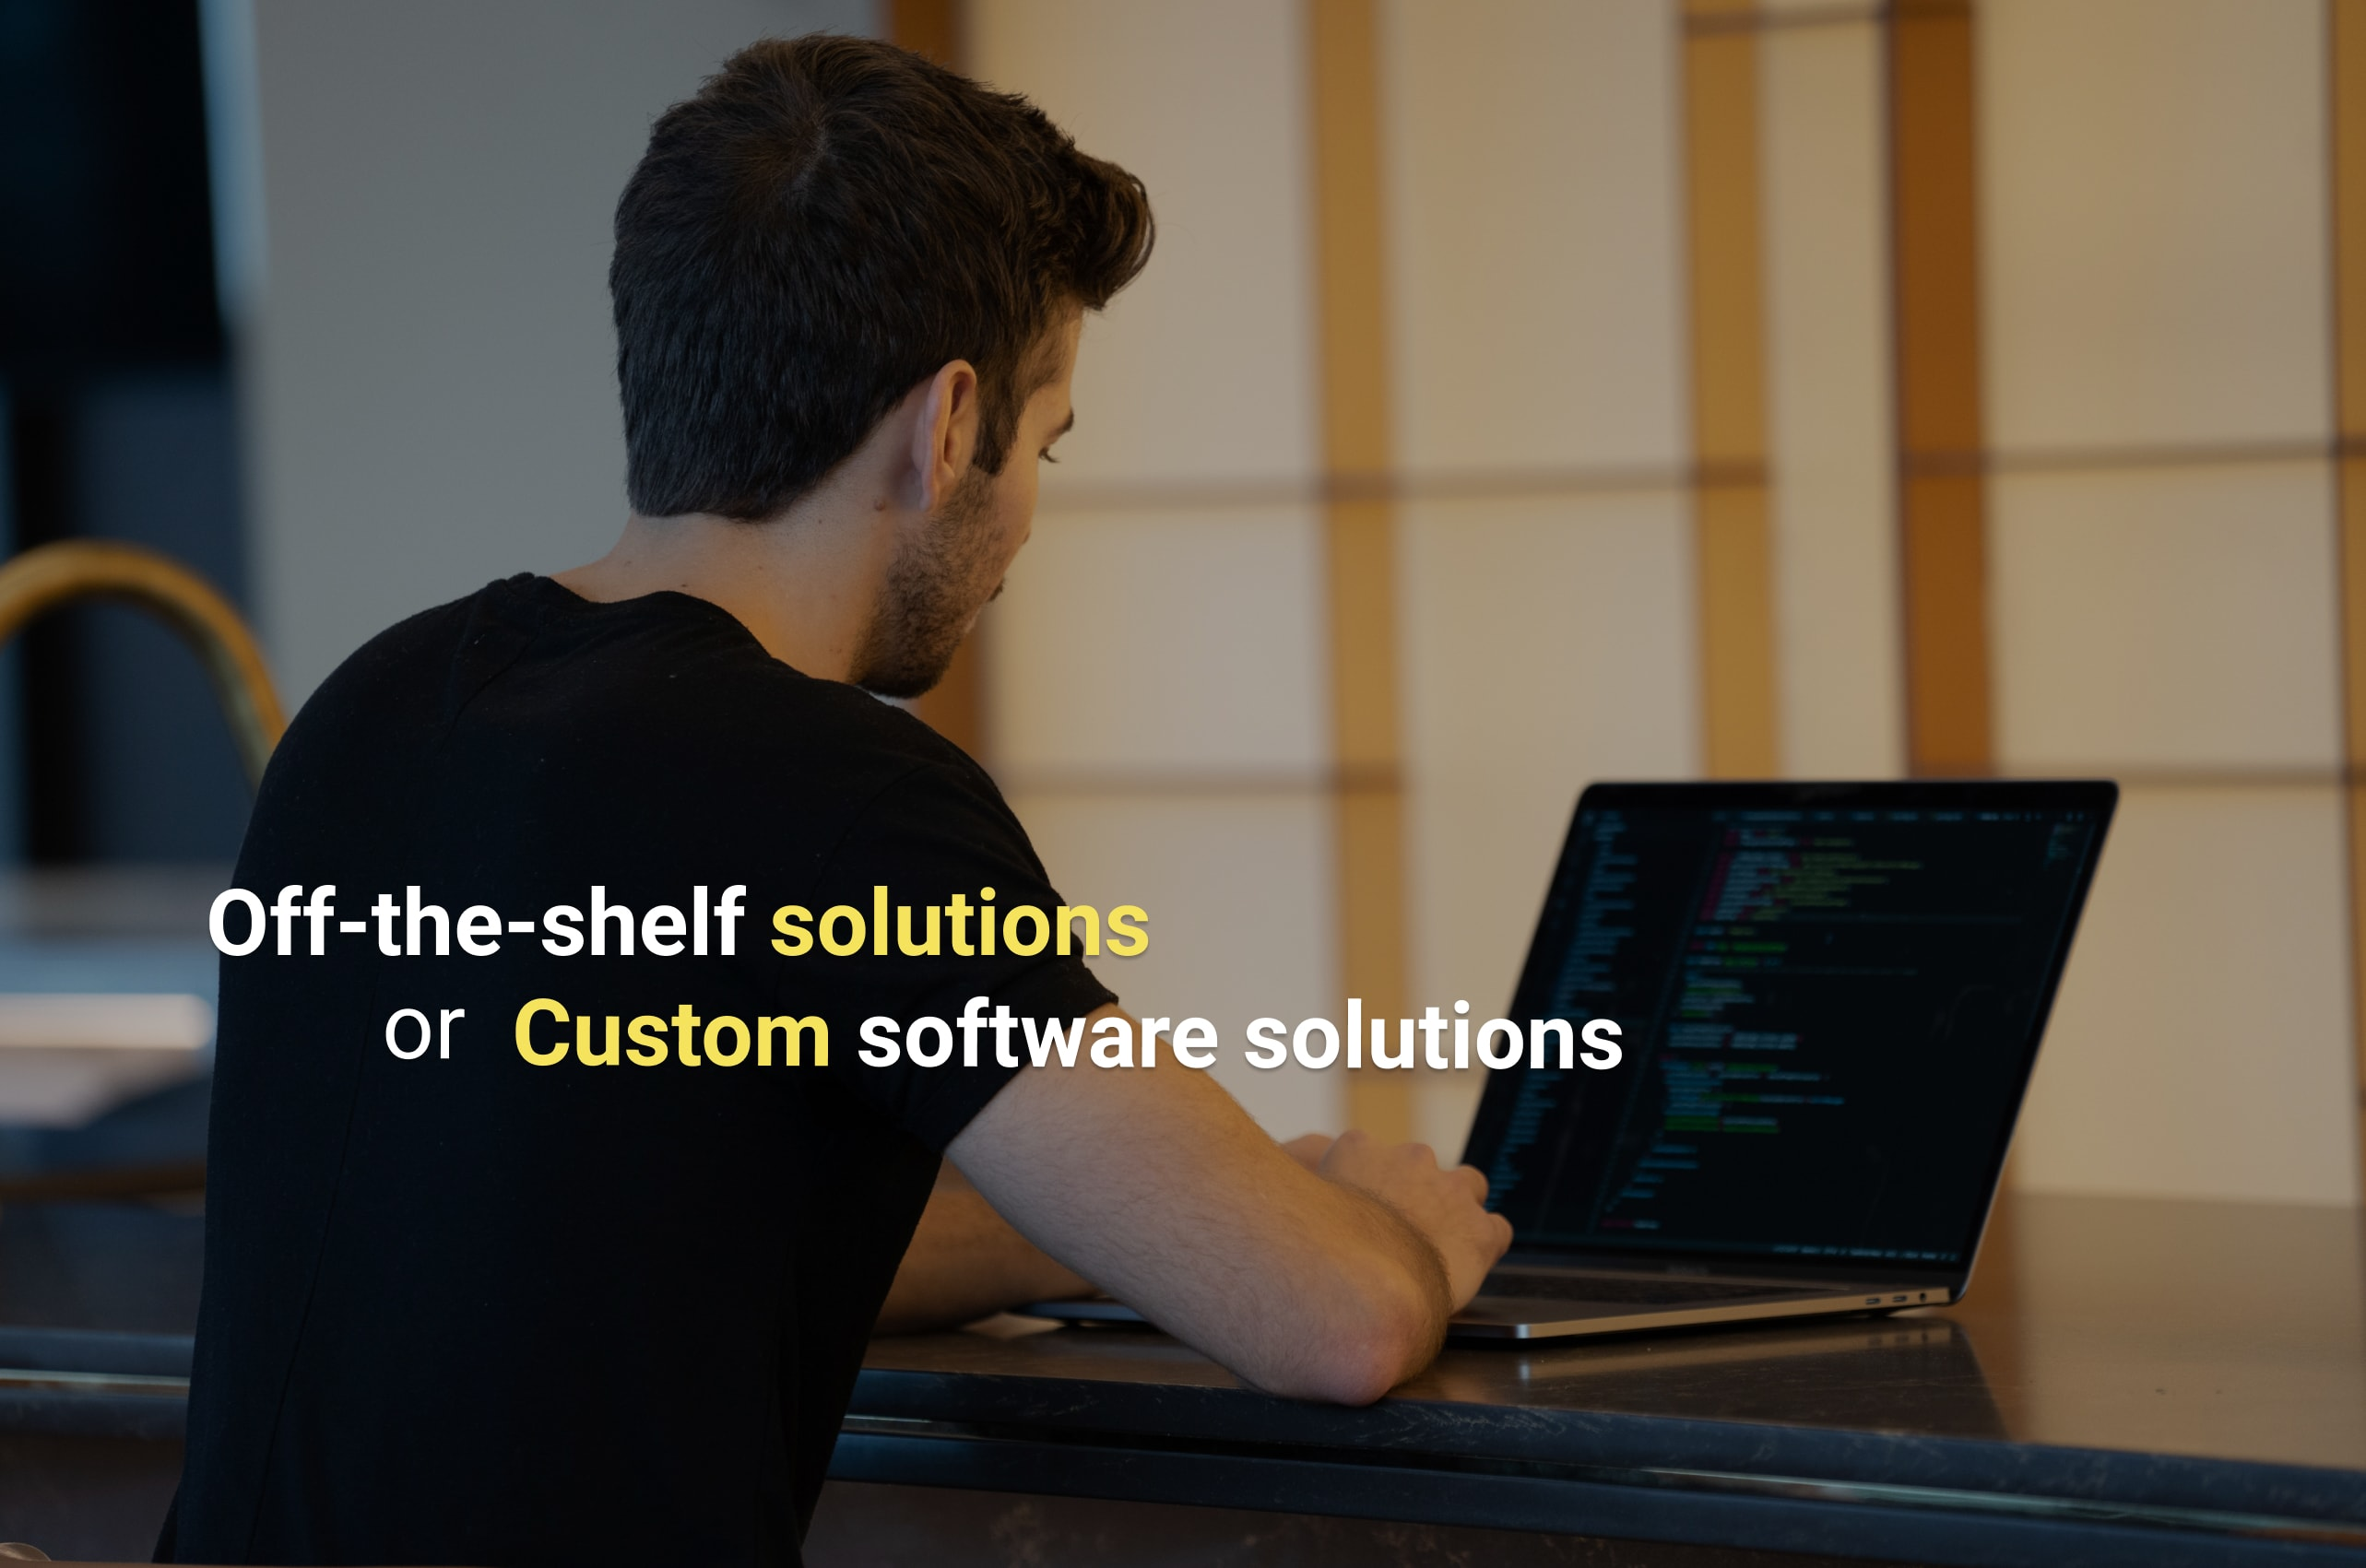 Advantages of Custom Software Over Commercial Off-the-Shelf Solutions